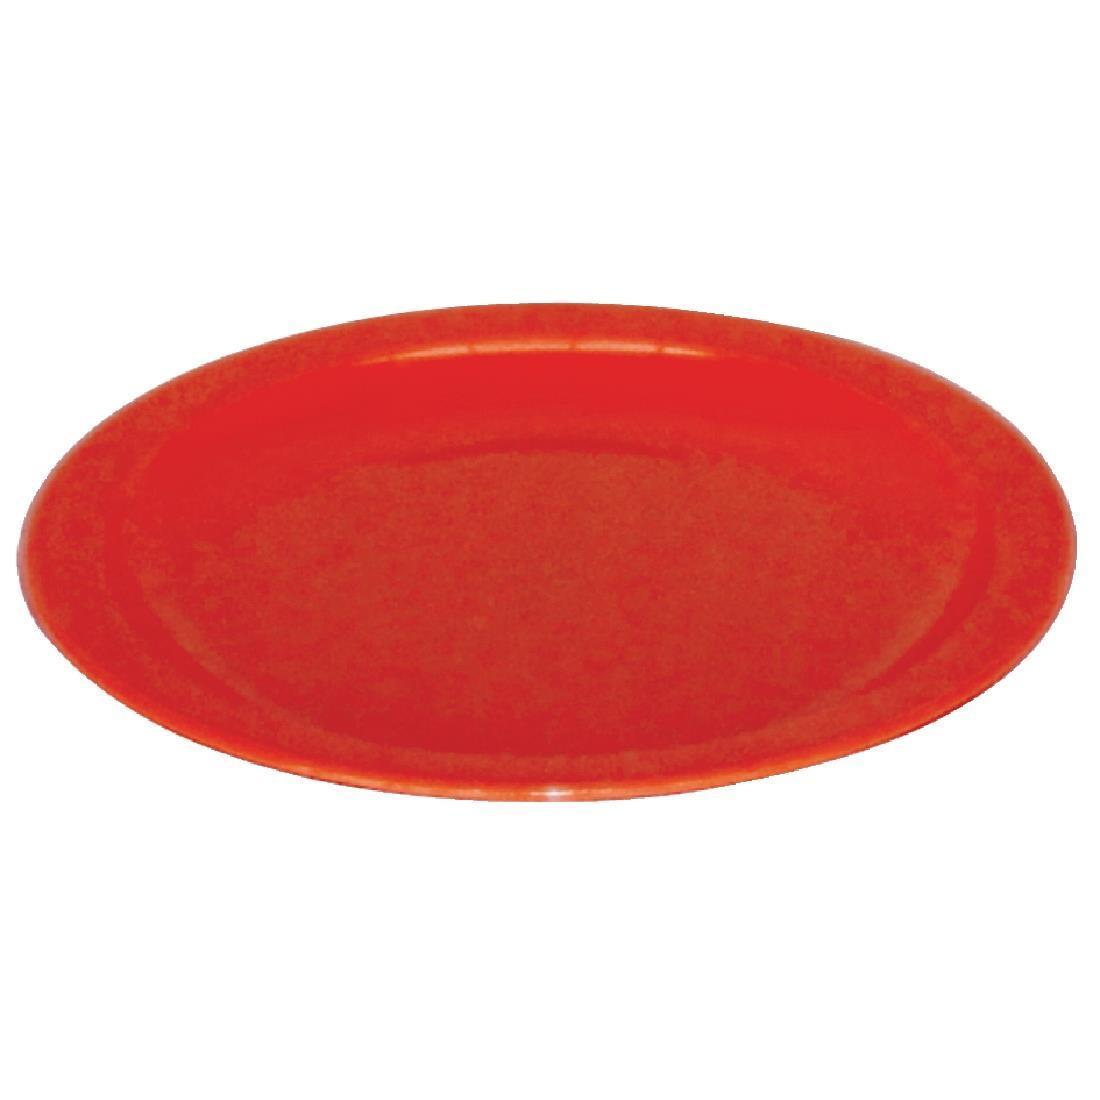 Kristallon Polycarbonate Plates Red 230mm - Case 12 - CB770